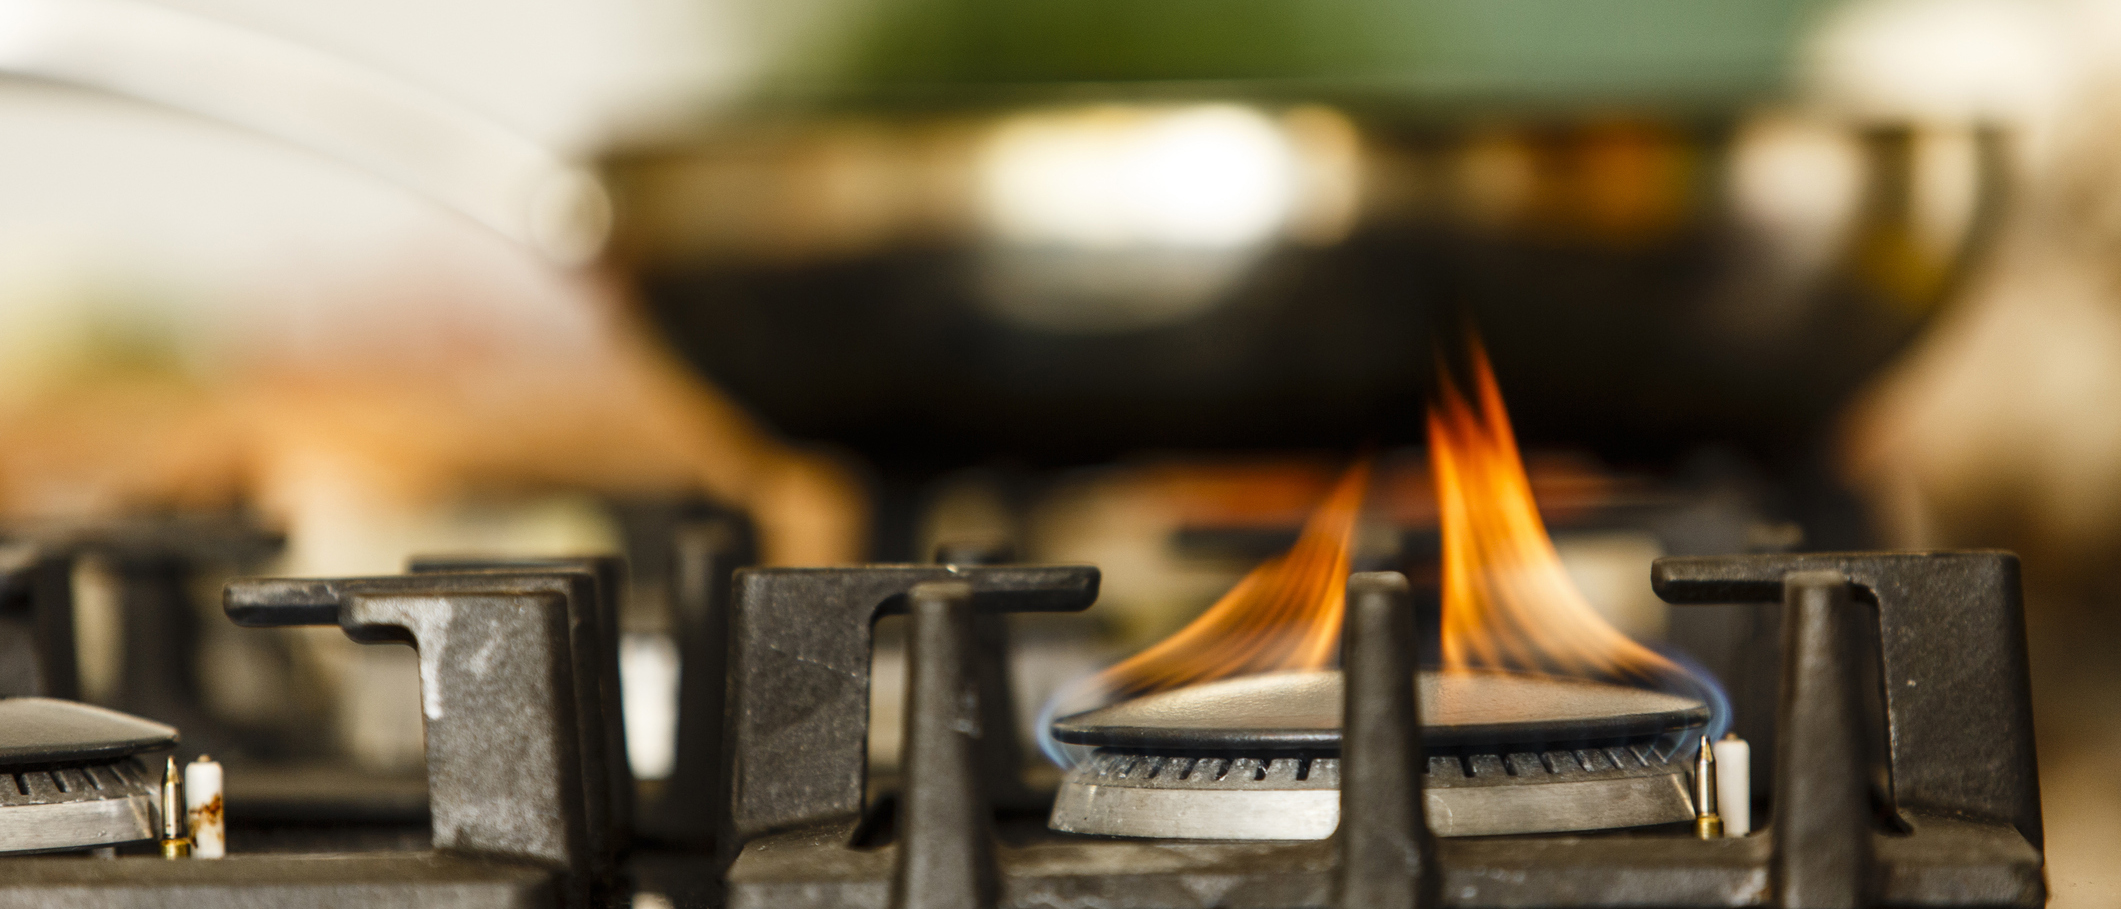 Close up of a flame on a gas burner